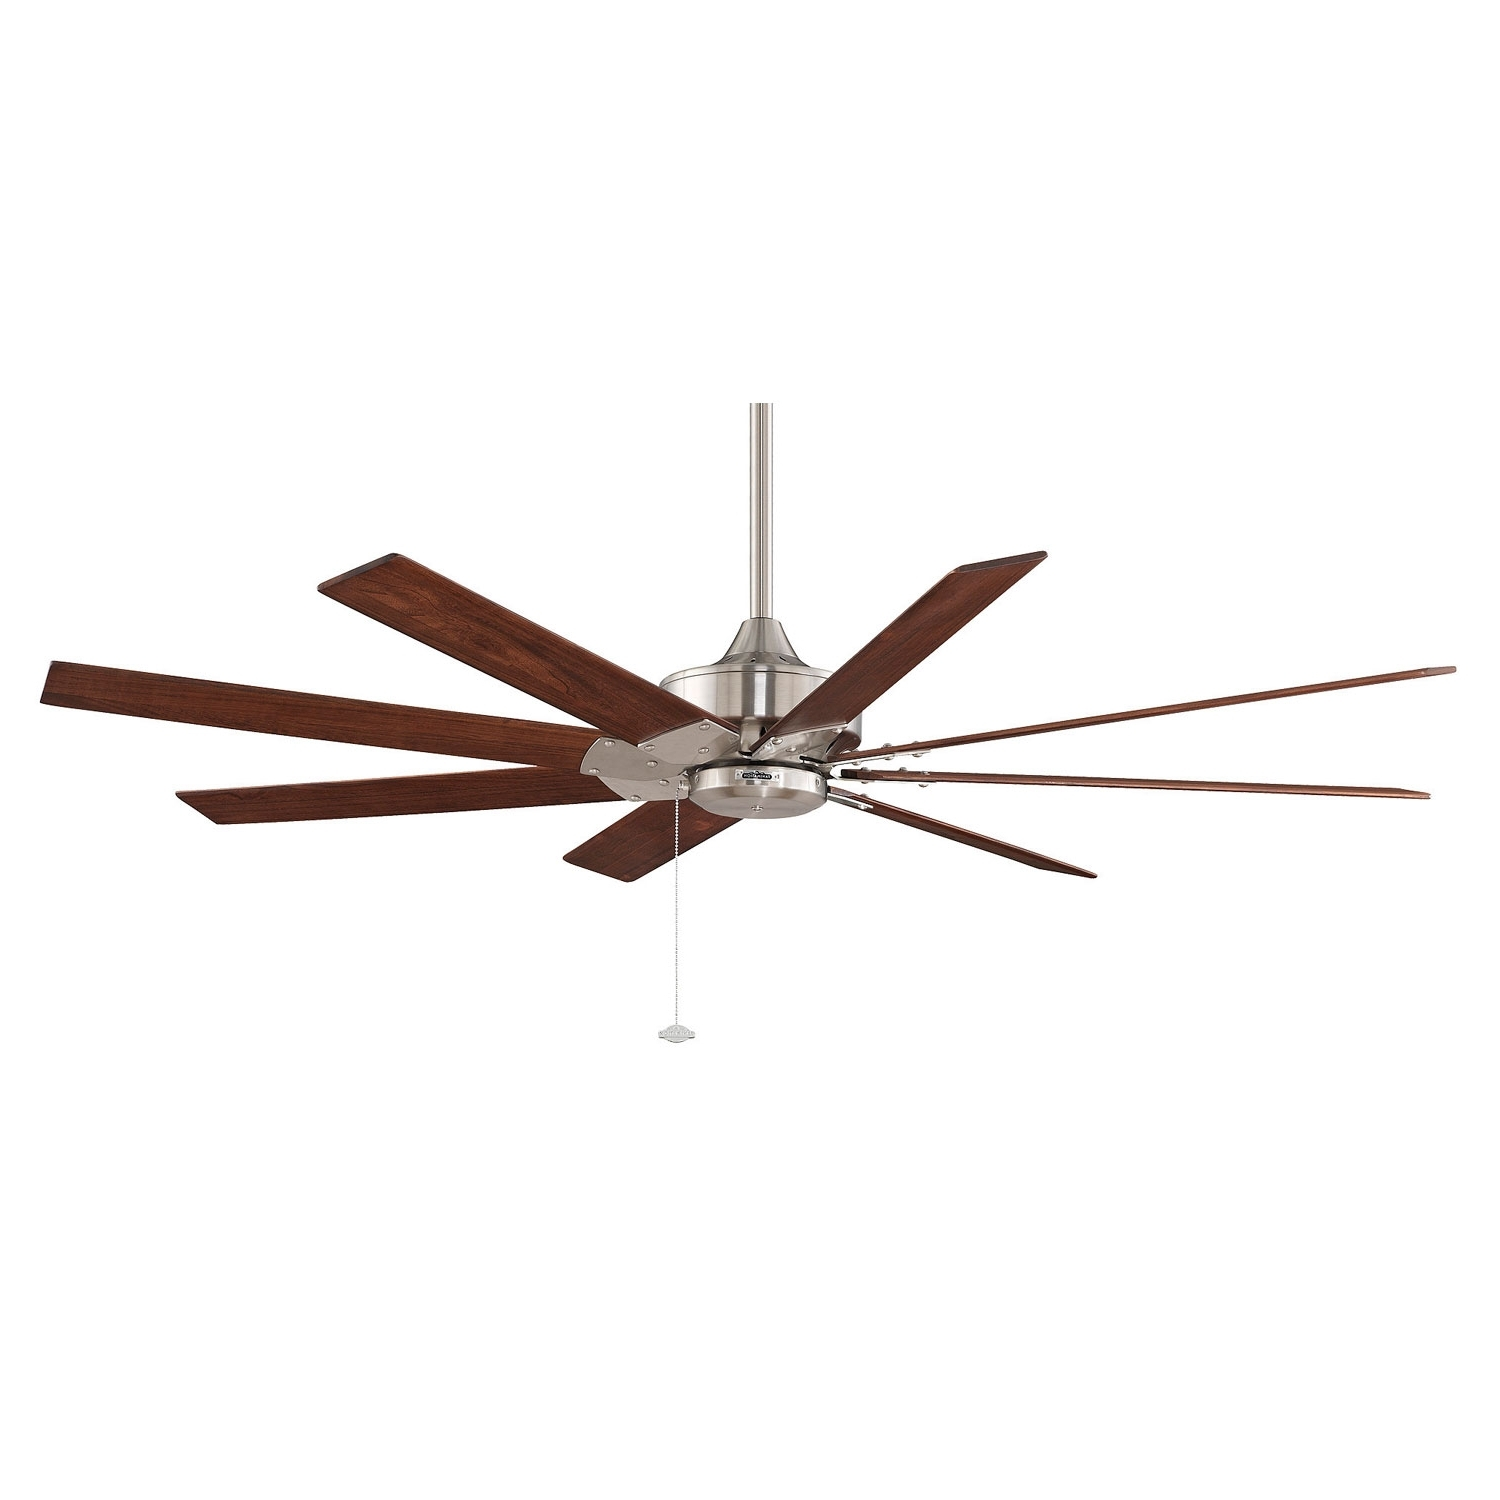 Nickel Outdoor Ceiling Fans Inside Well Known Fanimation Levon Brushed Nickel 63 Inch Energy Star Ceiling Fan With (Gallery 15 of 20)